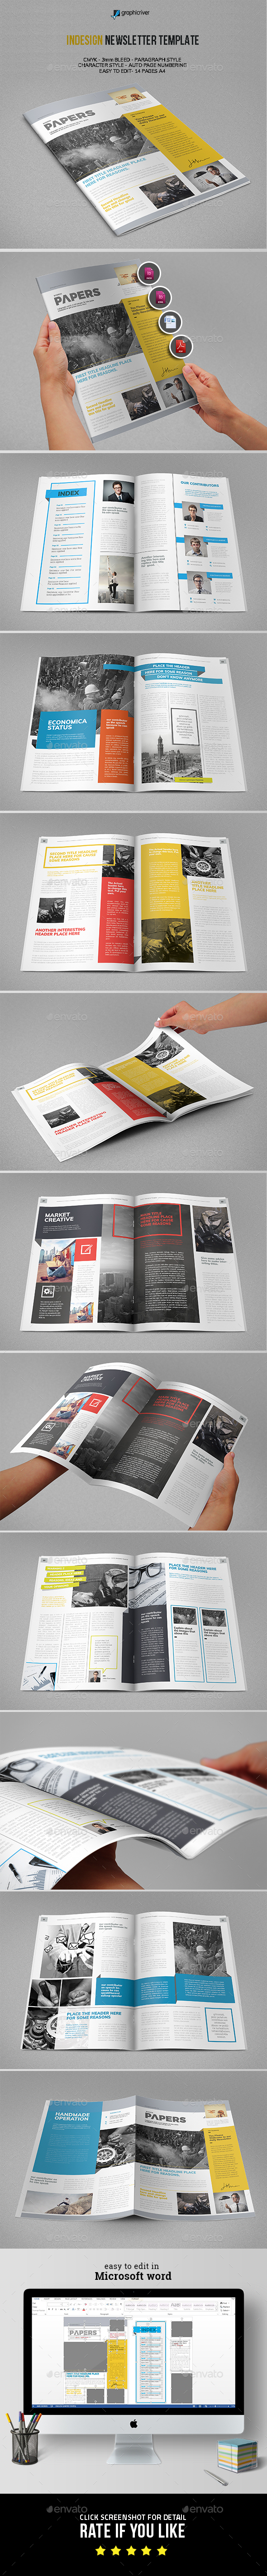 Papers Newsletter Template - Newsletters Print Templates